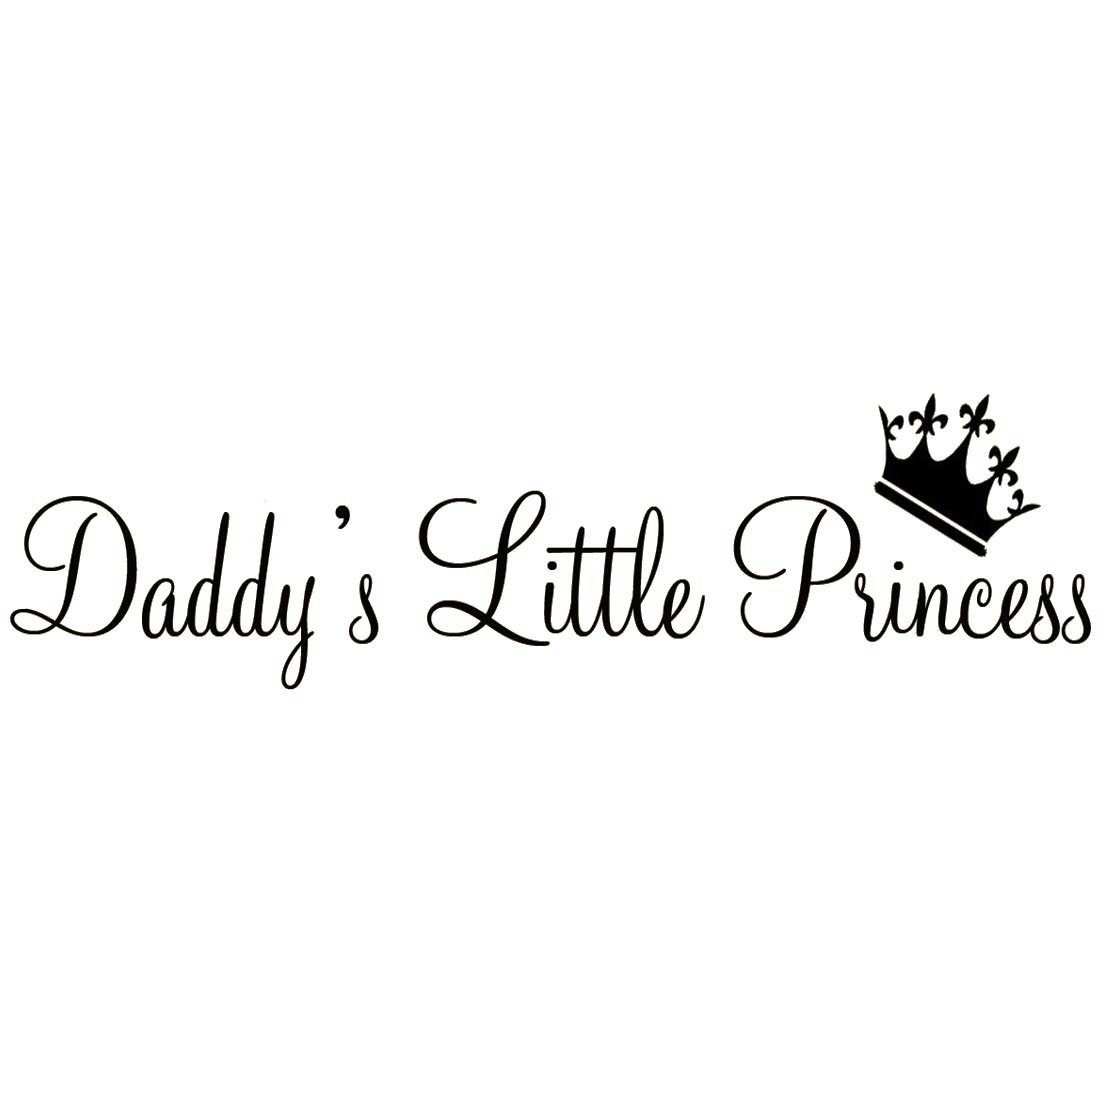 Vwaq Daddys Little Princess Nursery Wall Decals Cute Baby Quote